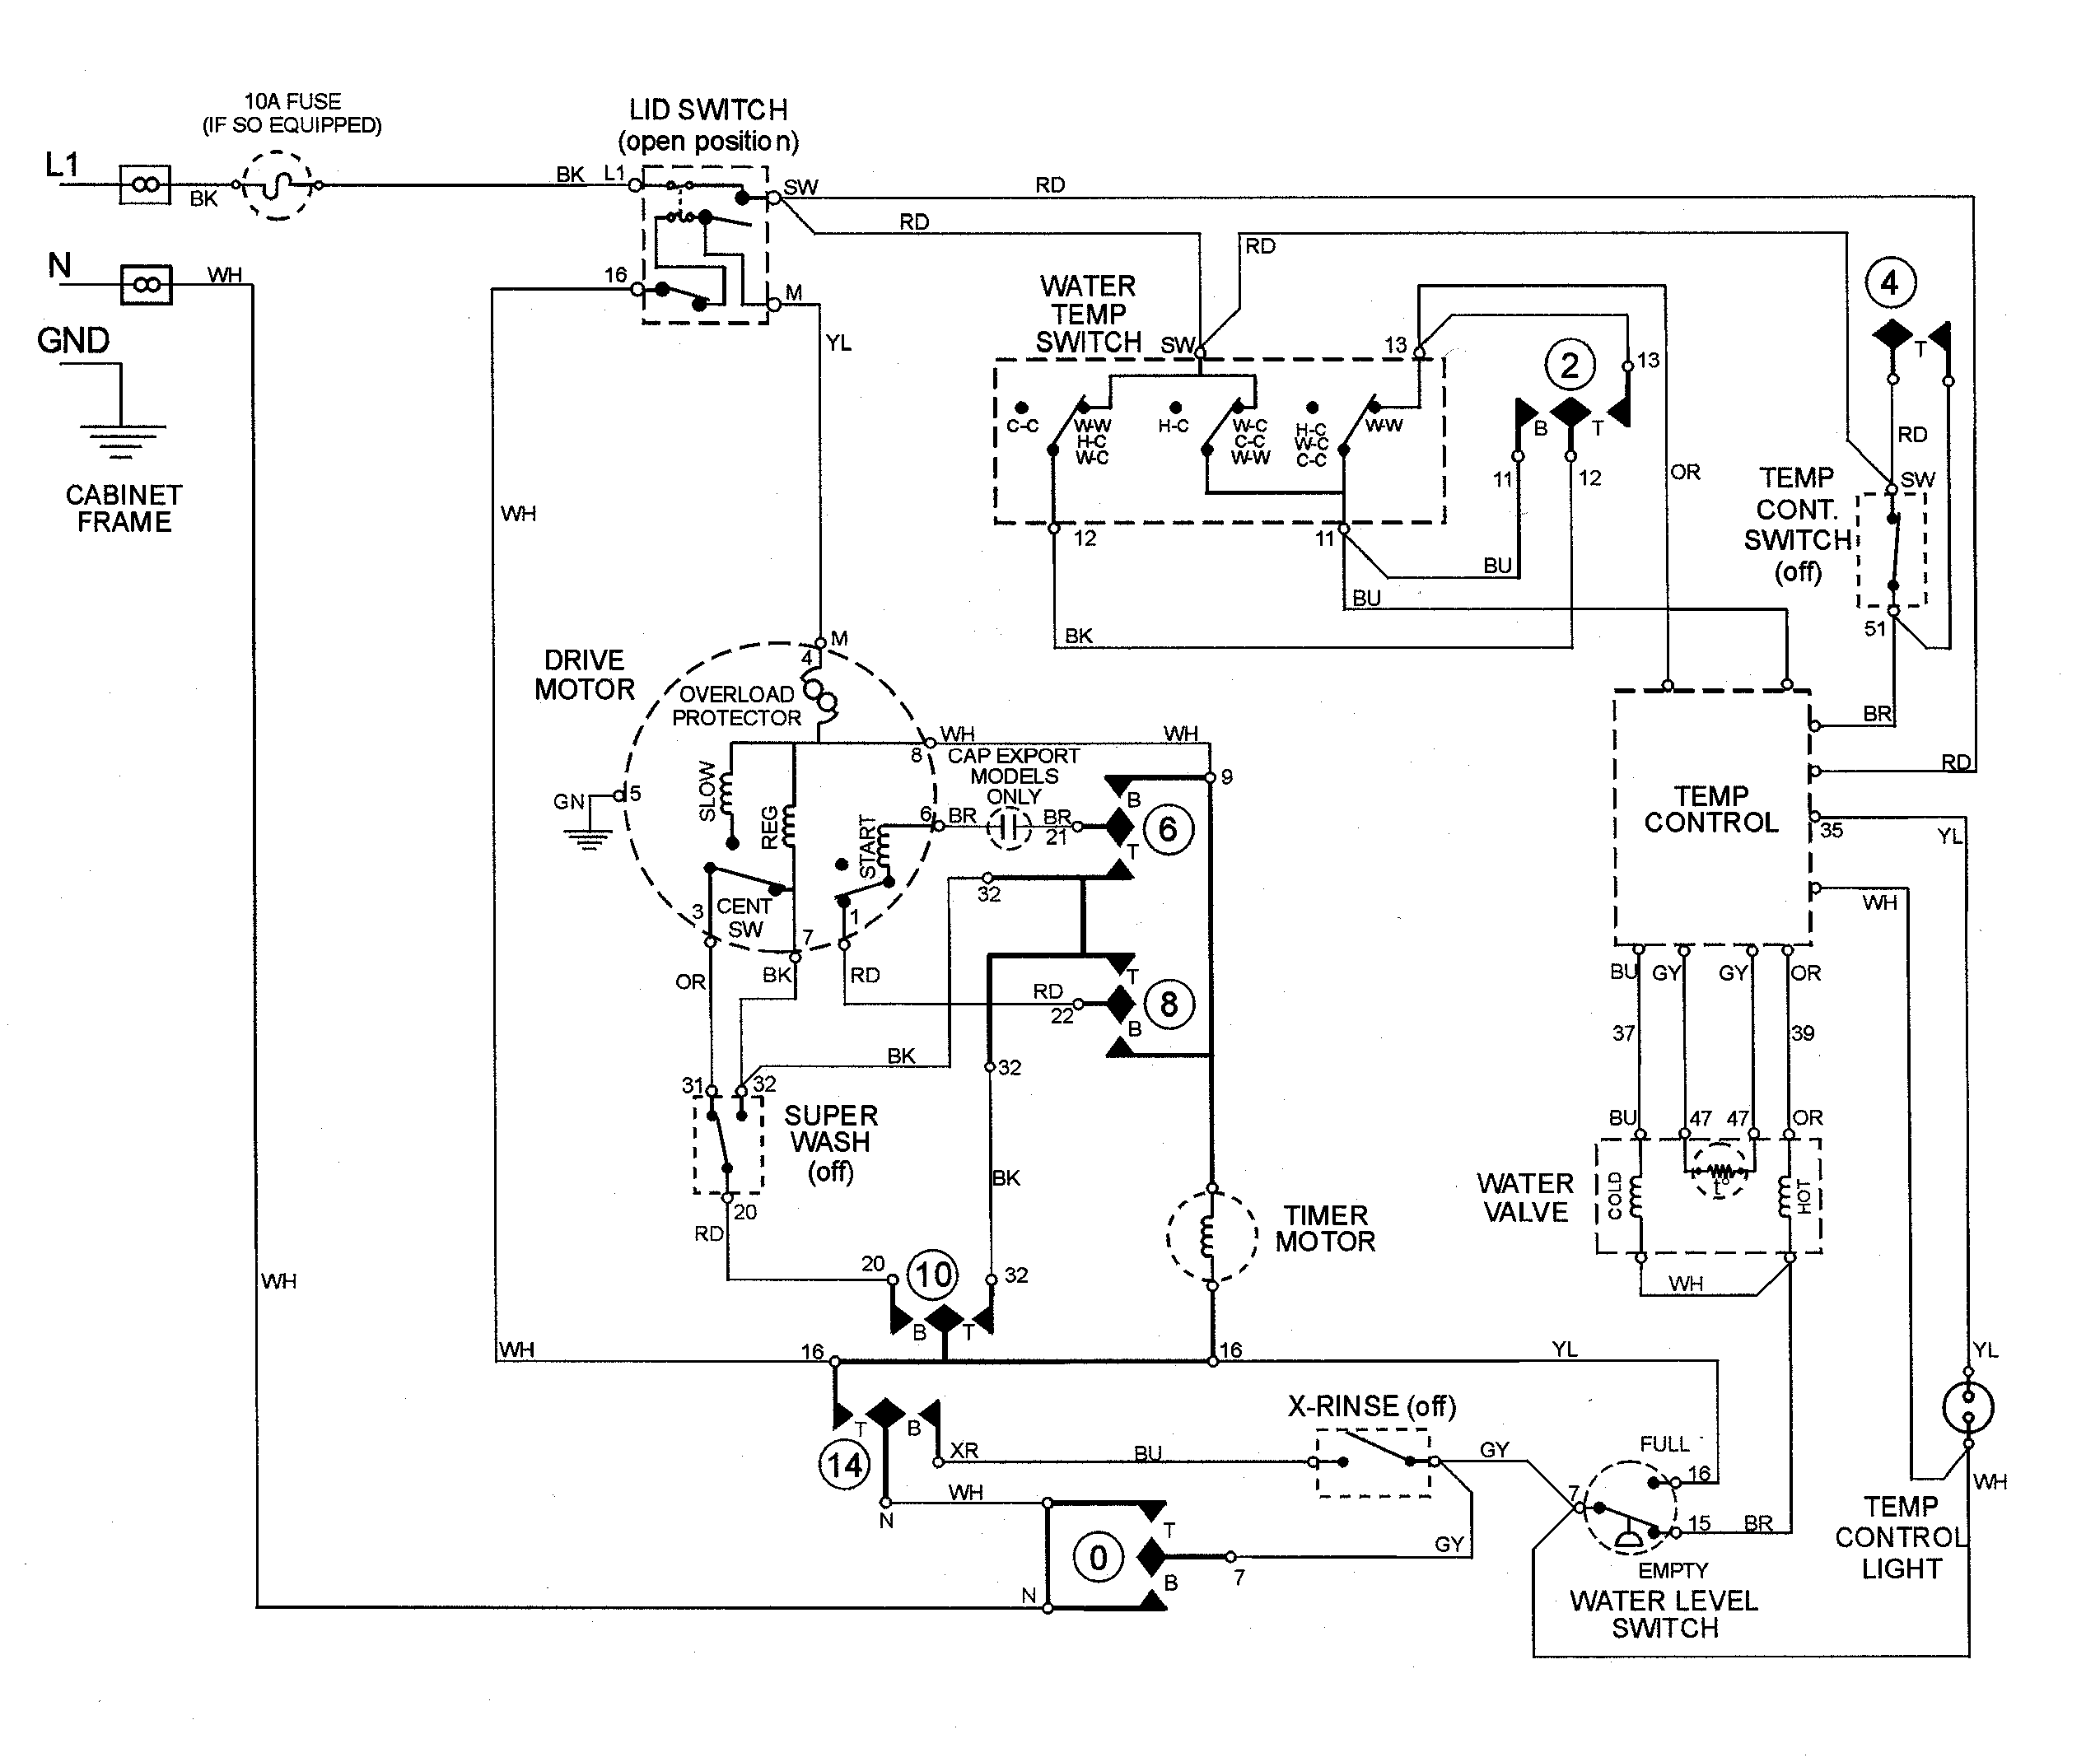 medium resolution of machines wiring diagram wires wiring diagram split 120v washer wire diagram wiring diagram host machines wiring